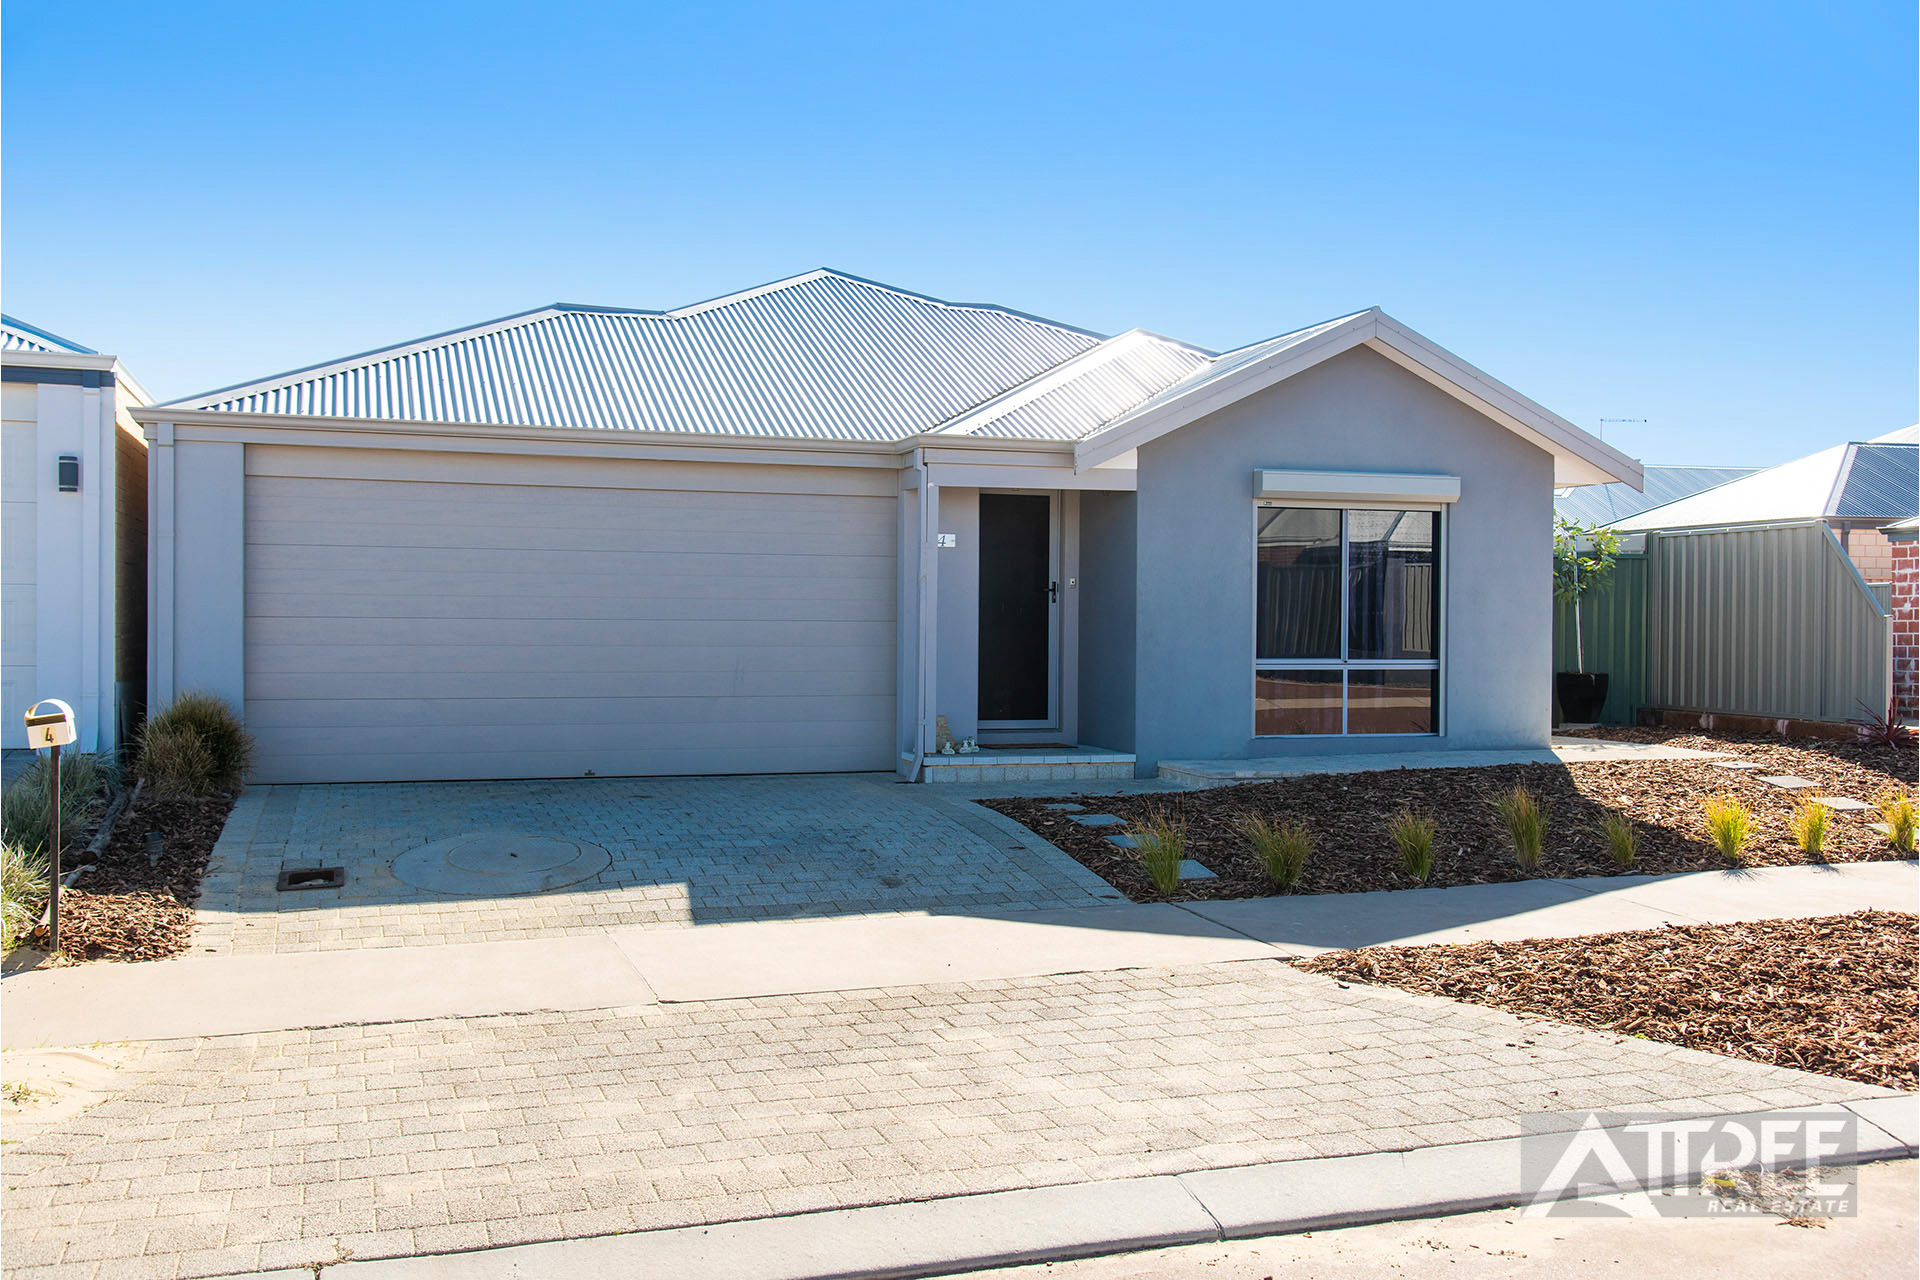 Property for sale in BYFORD, 4 Mirbelia Road : Attree Real Estate